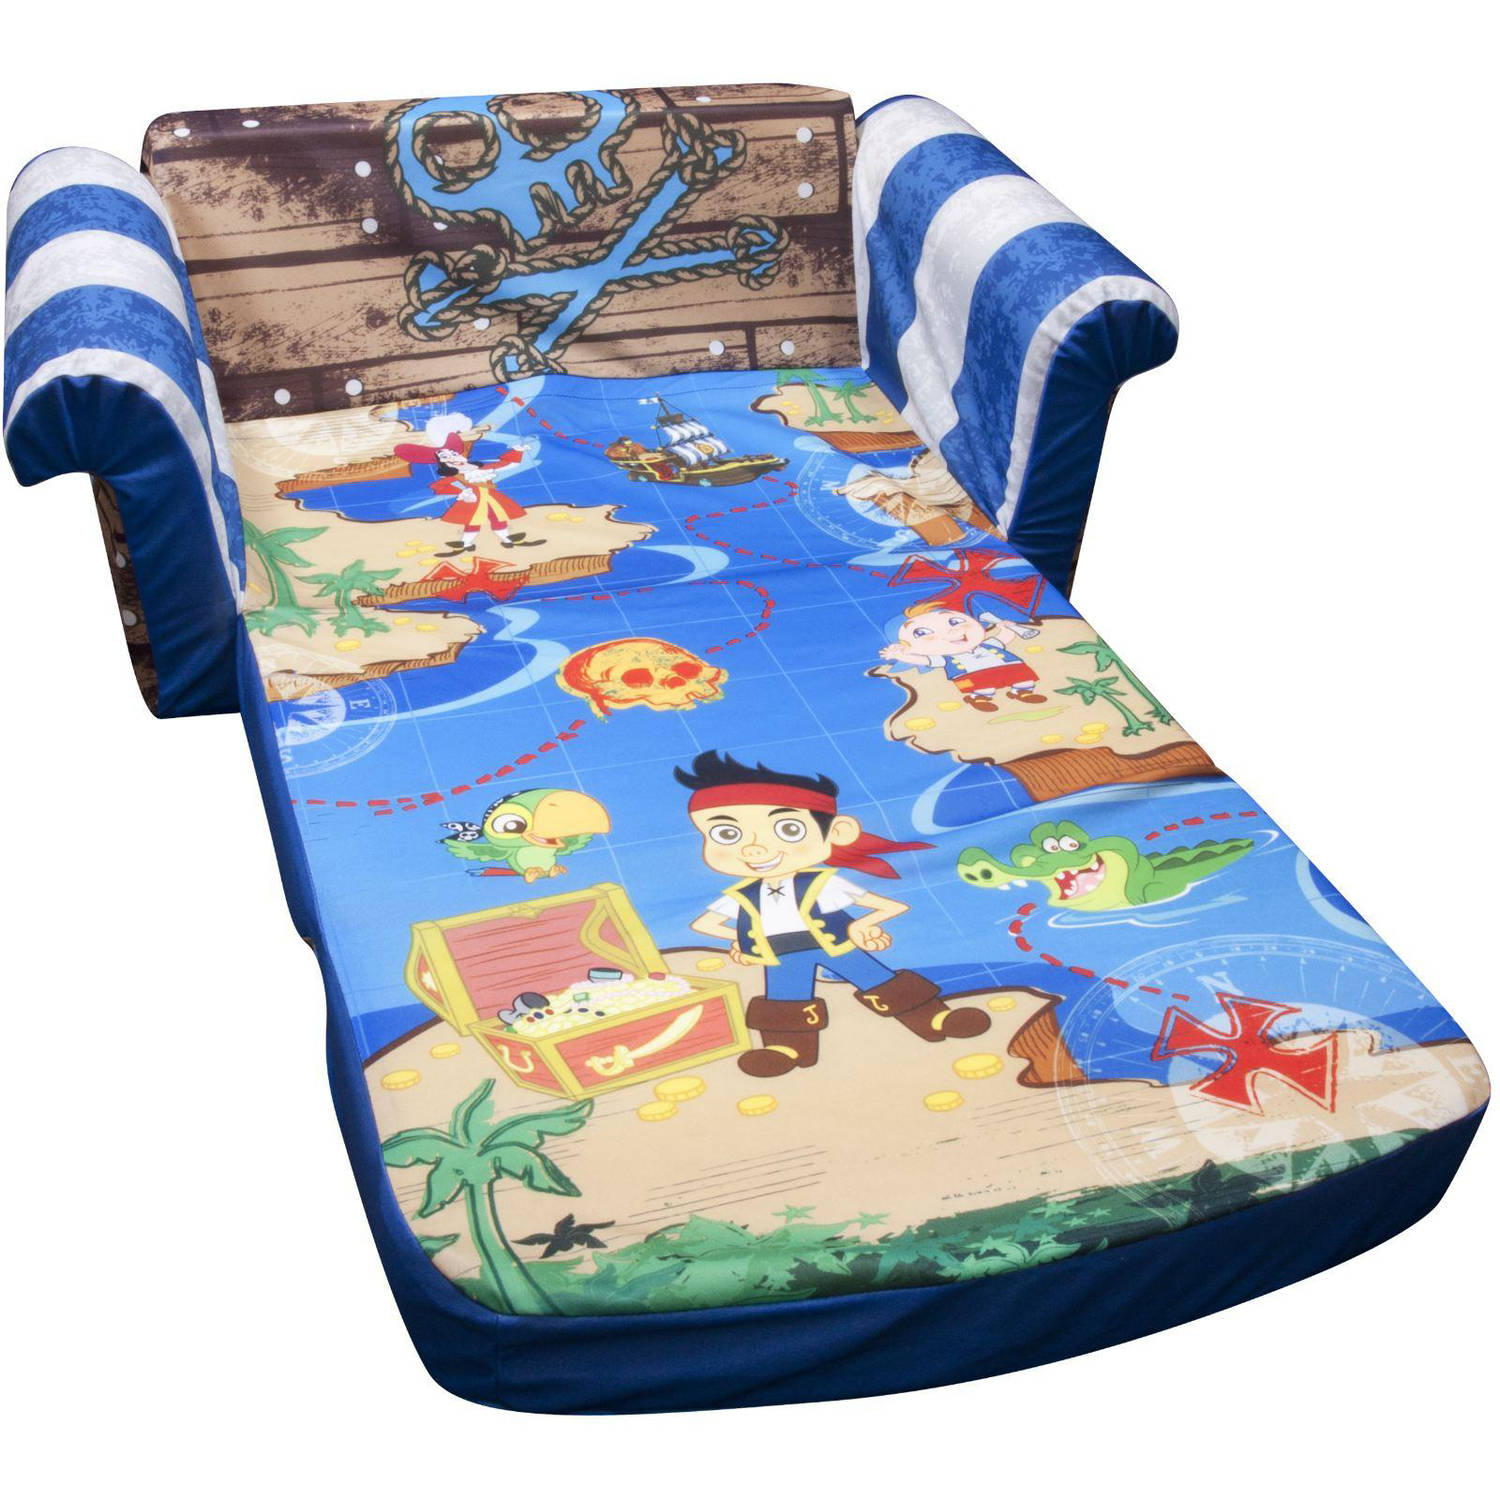 Marshmallow 2 In 1 Flip Open Sofa, Disney Jake And The Neverland Pirates